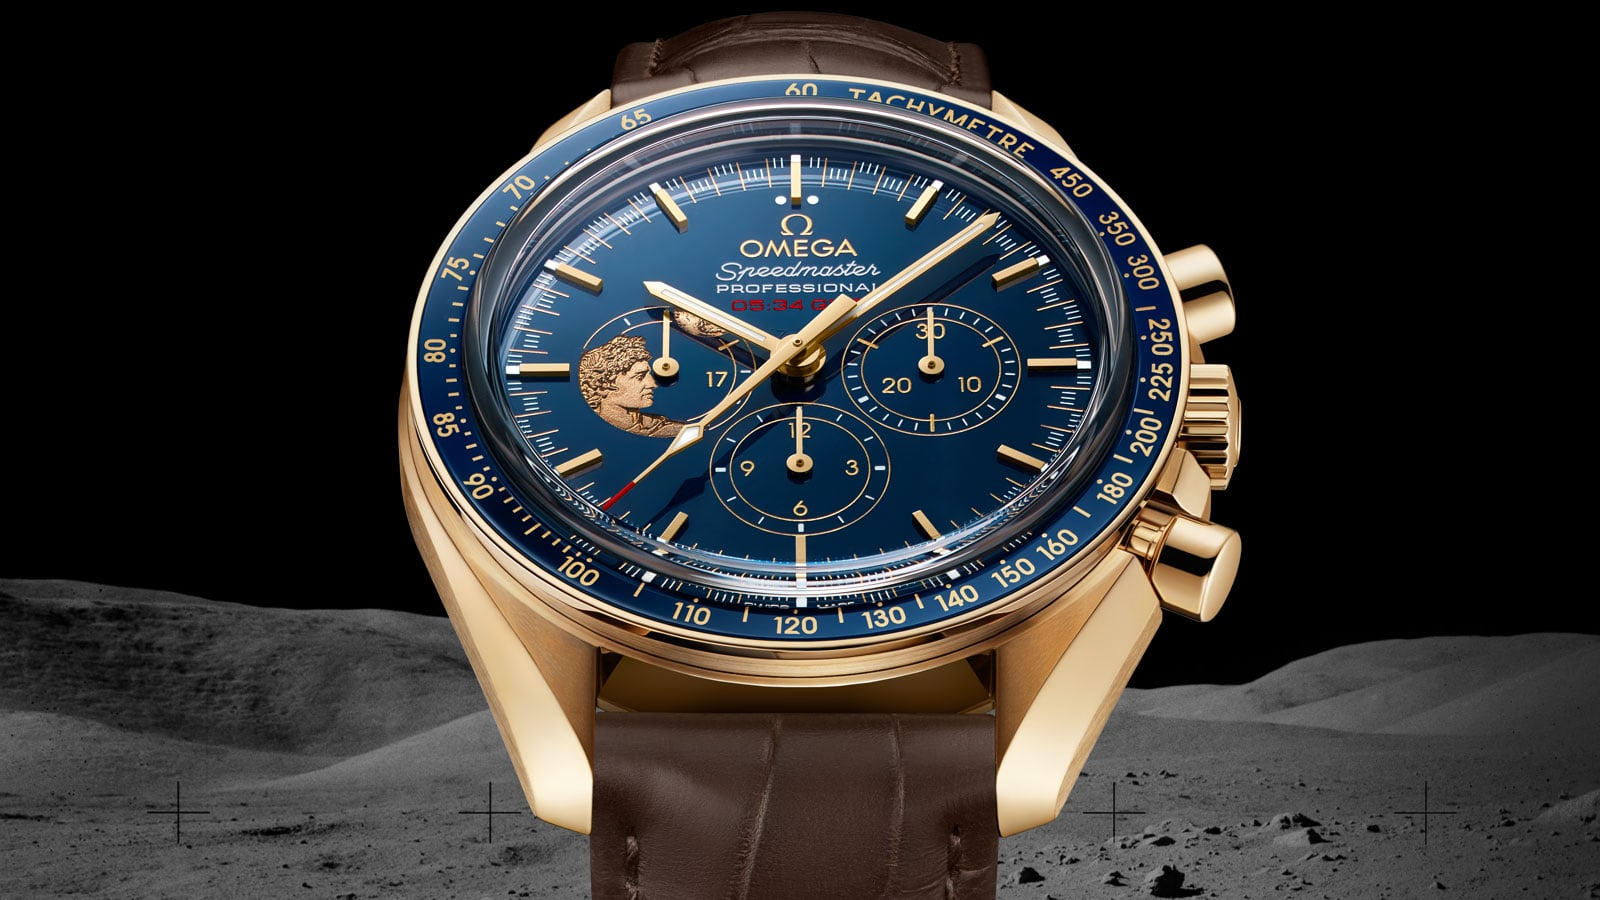 Close-up view of the OMEGA SPEEDMASTER APOLLO 17 45TH ANNIVERSARY LIMITED EDITION yellow gold model with blue ceramic dial a brown leather strap and 18K gold case and small elements